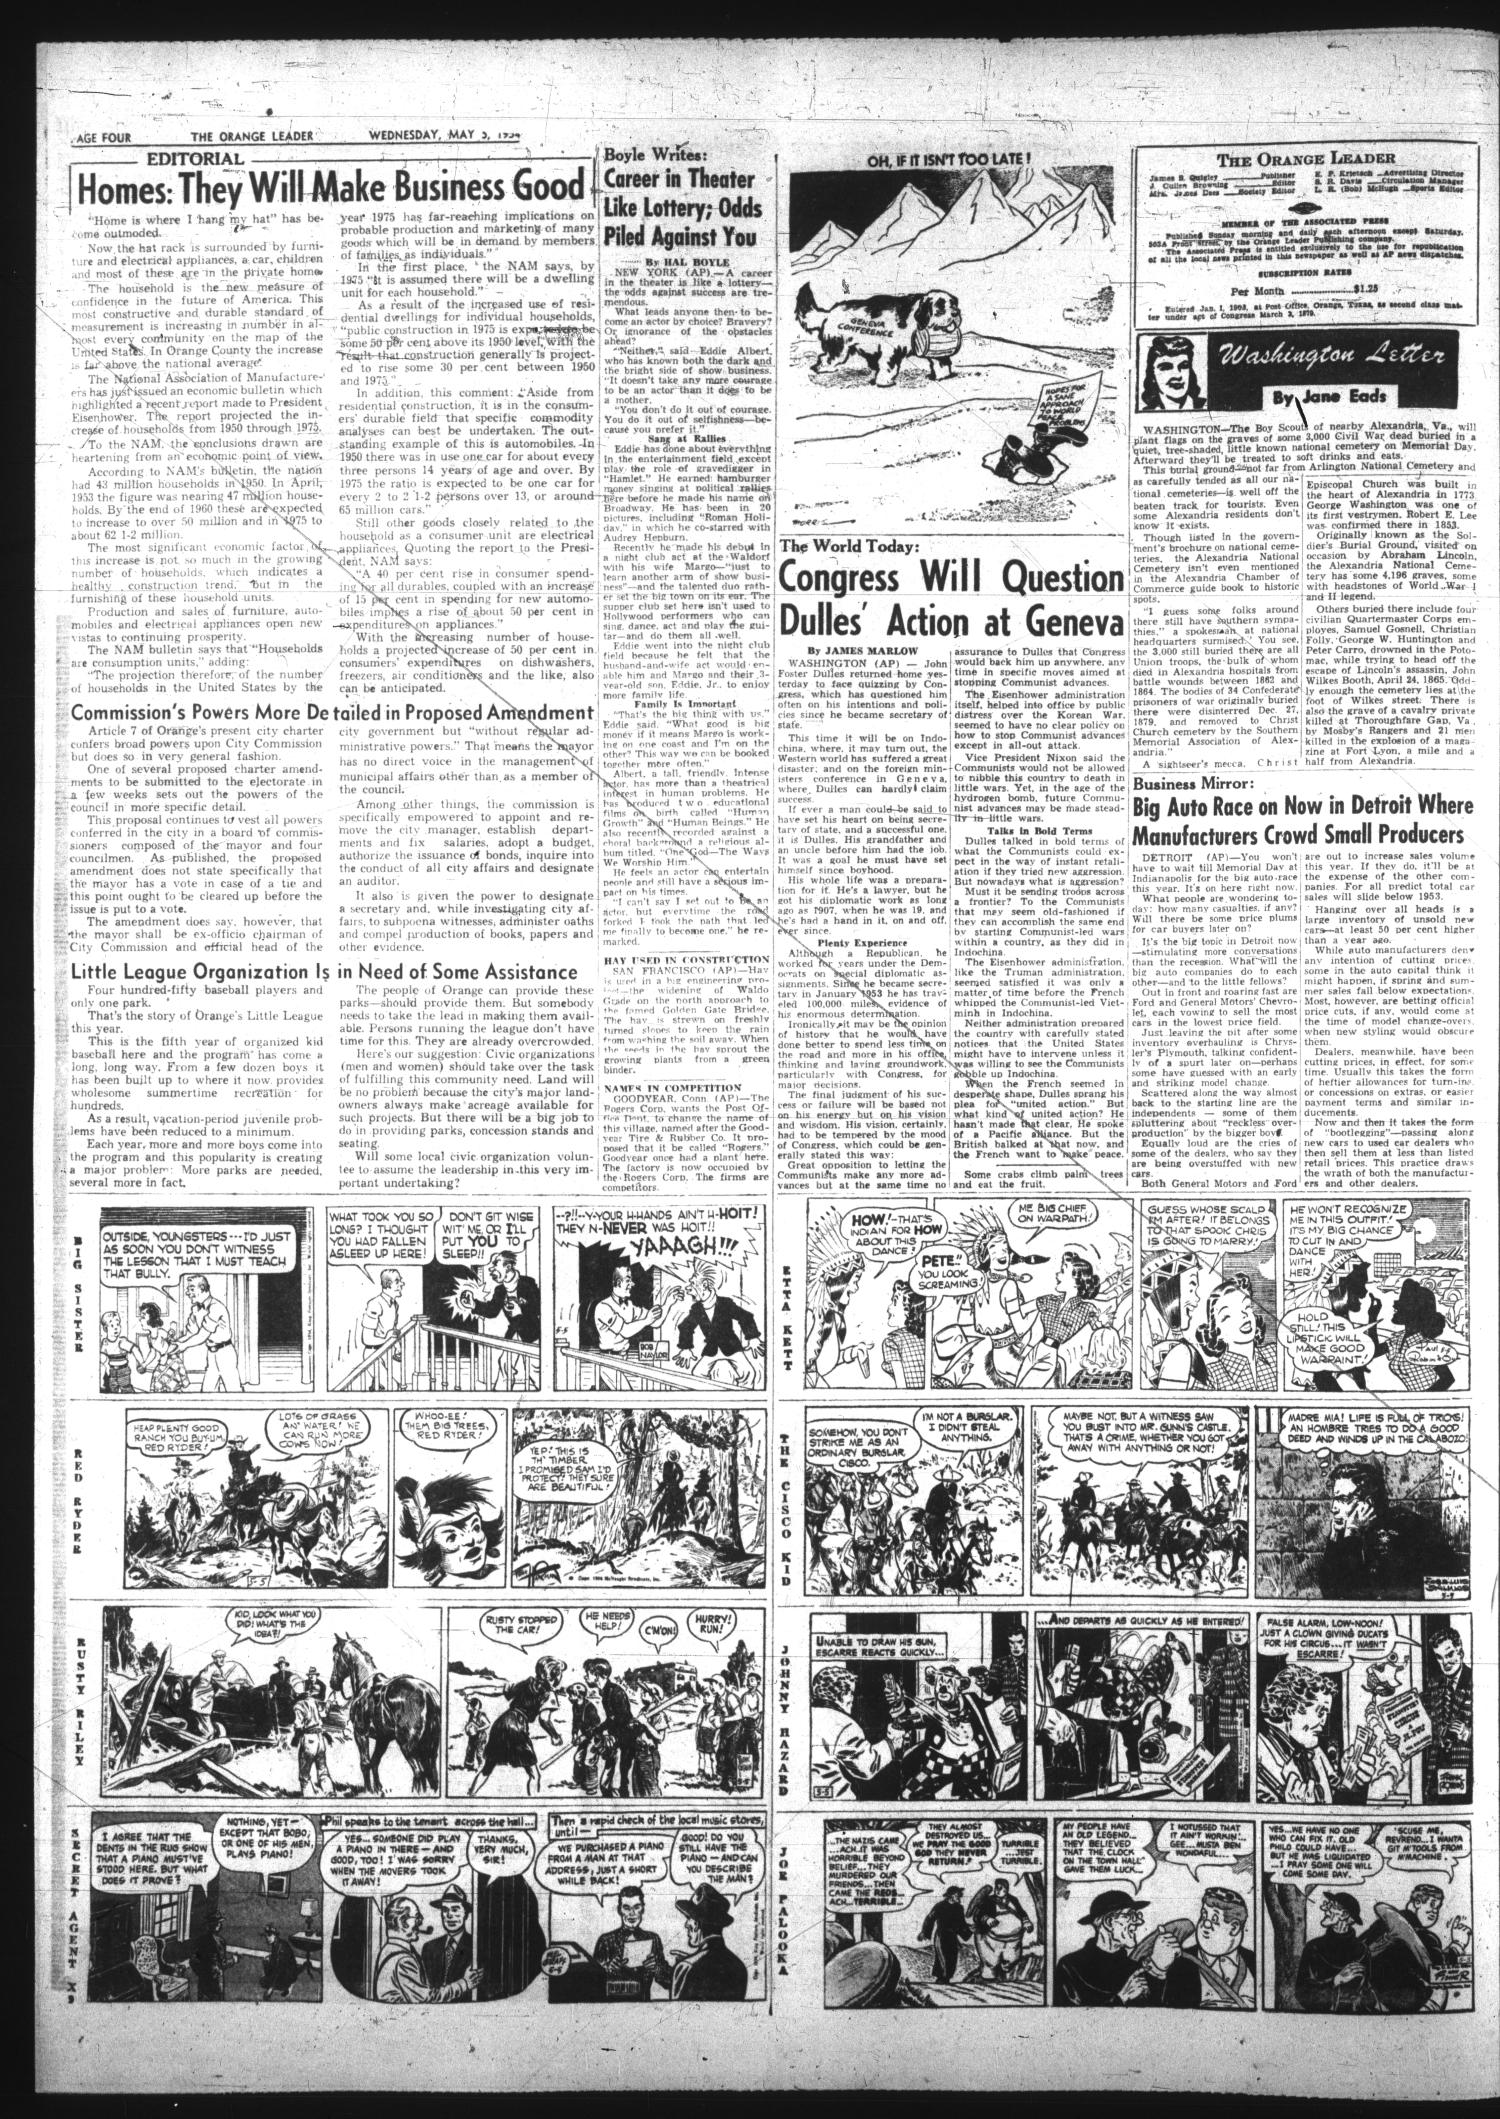 The Orange Leader (Orange, Tex.), Vol. 52, No. 109, Ed. 1 Wednesday, May 5, 1954                                                                                                      [Sequence #]: 4 of 12